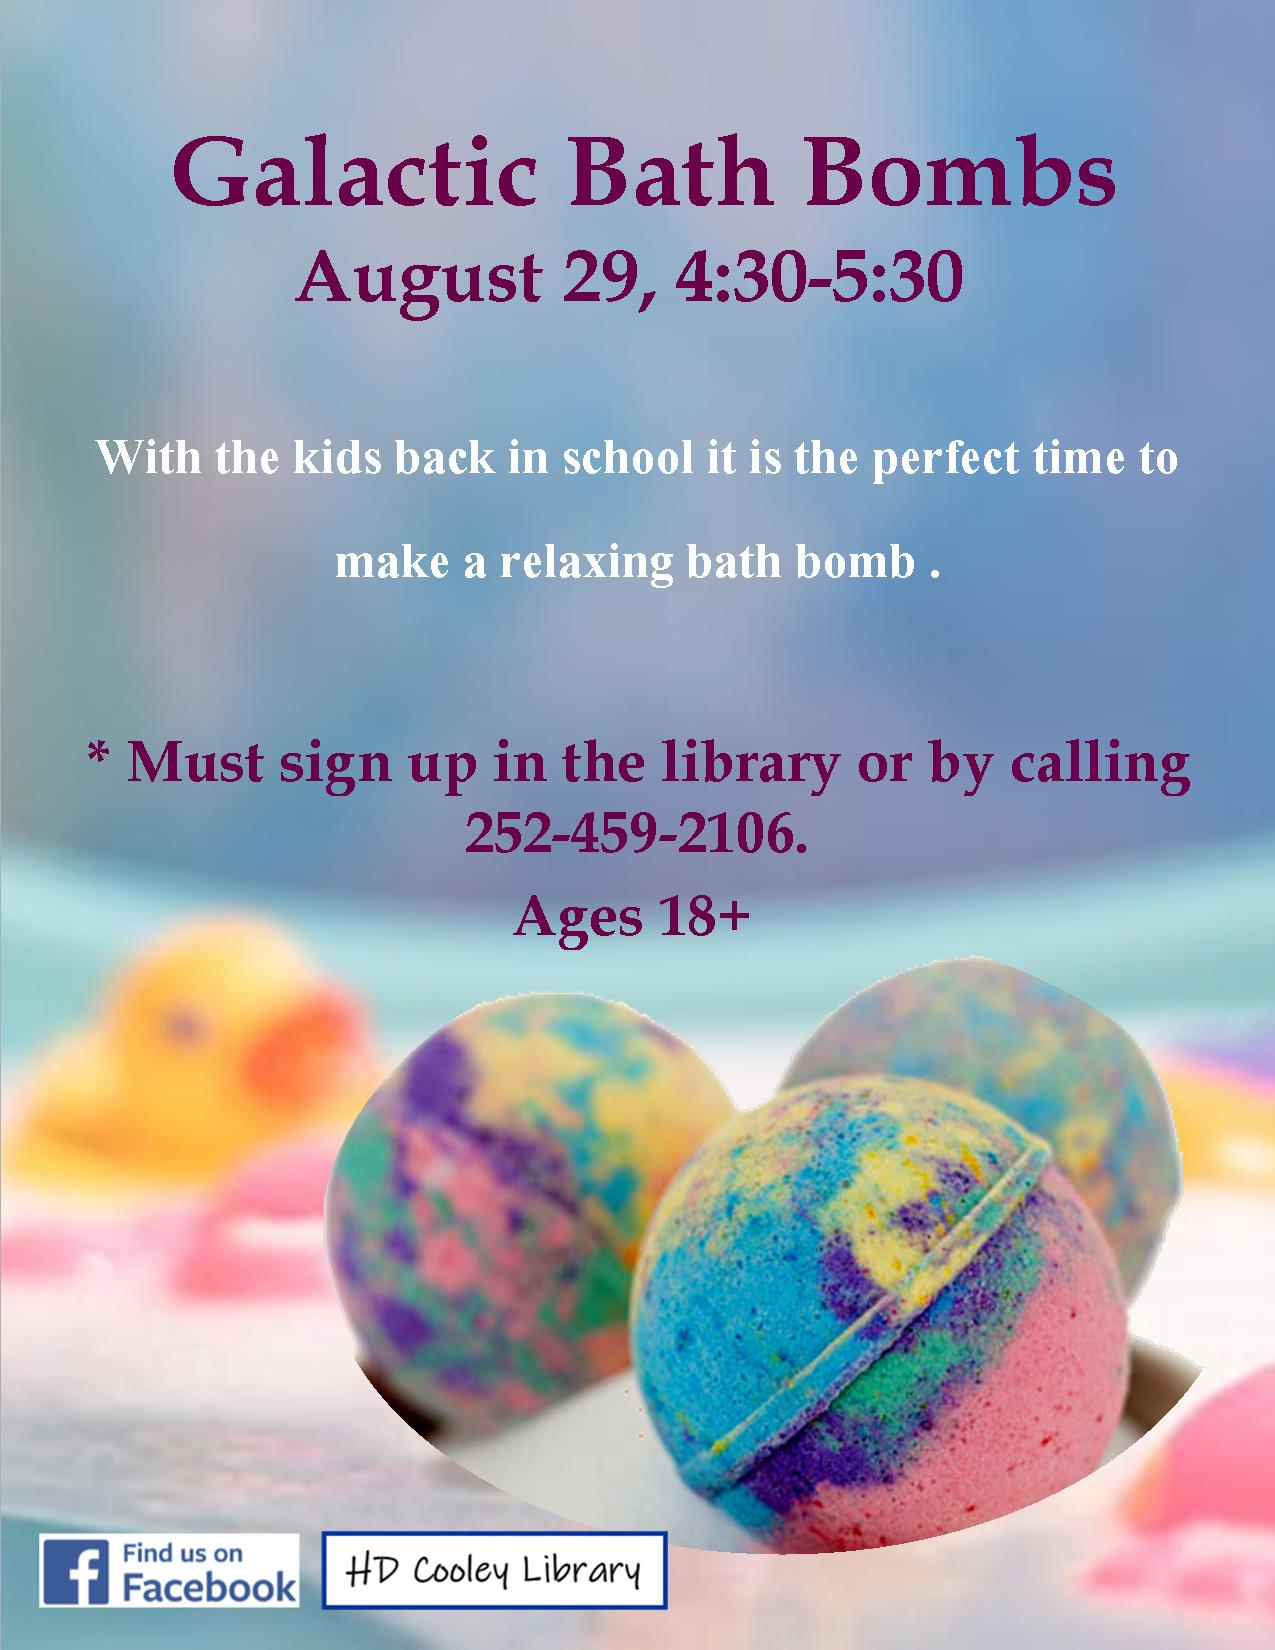 Bath Bombs class date and time